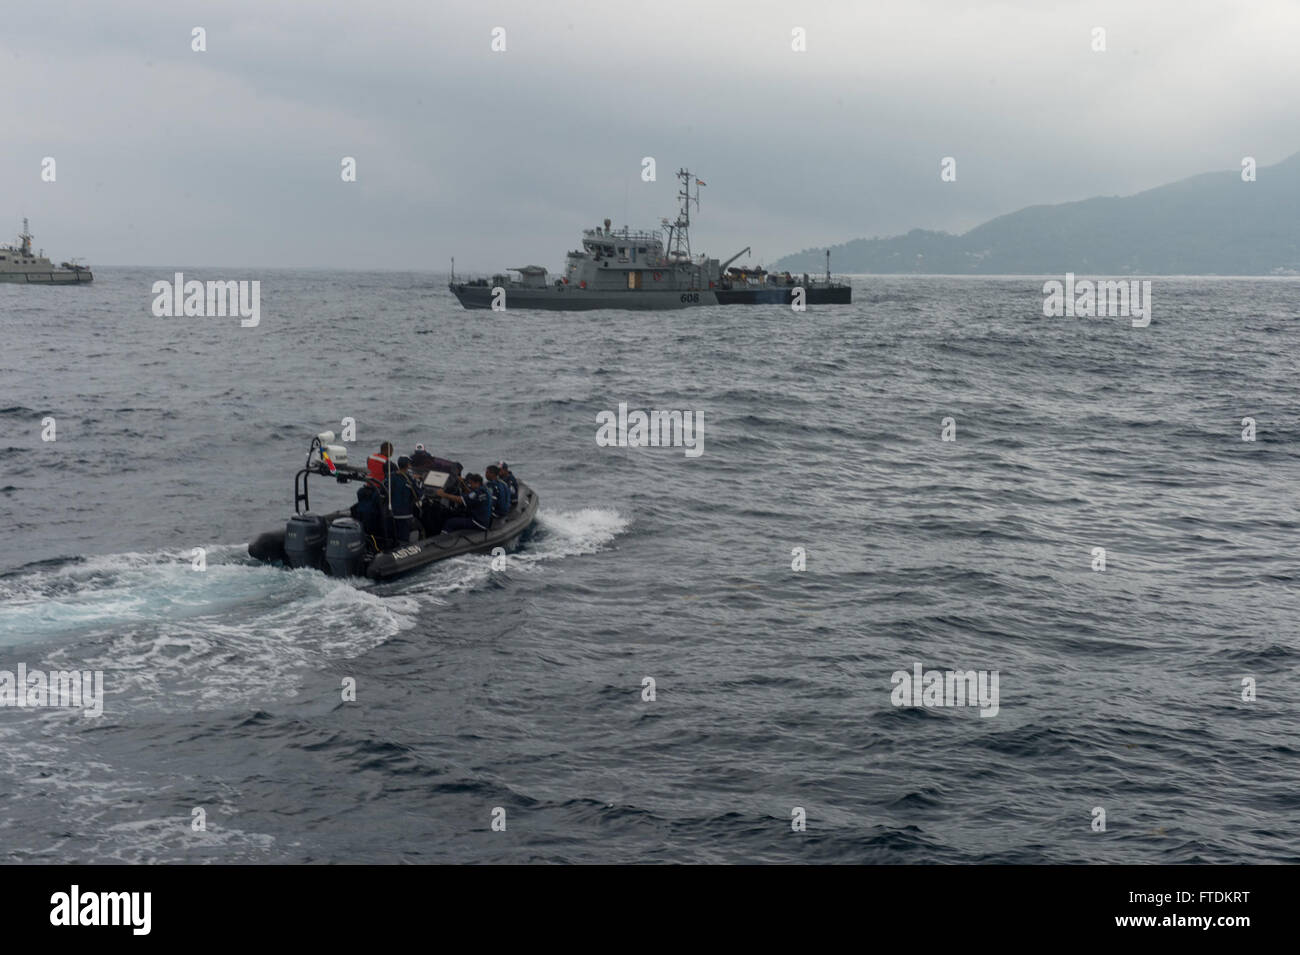 160202-N-TC720-075 PORT VICTORIA, Seychelles (Feb.2, 2016) -Maritime forces from Seychelles pilot a rigid hull inflatable Stock Photo